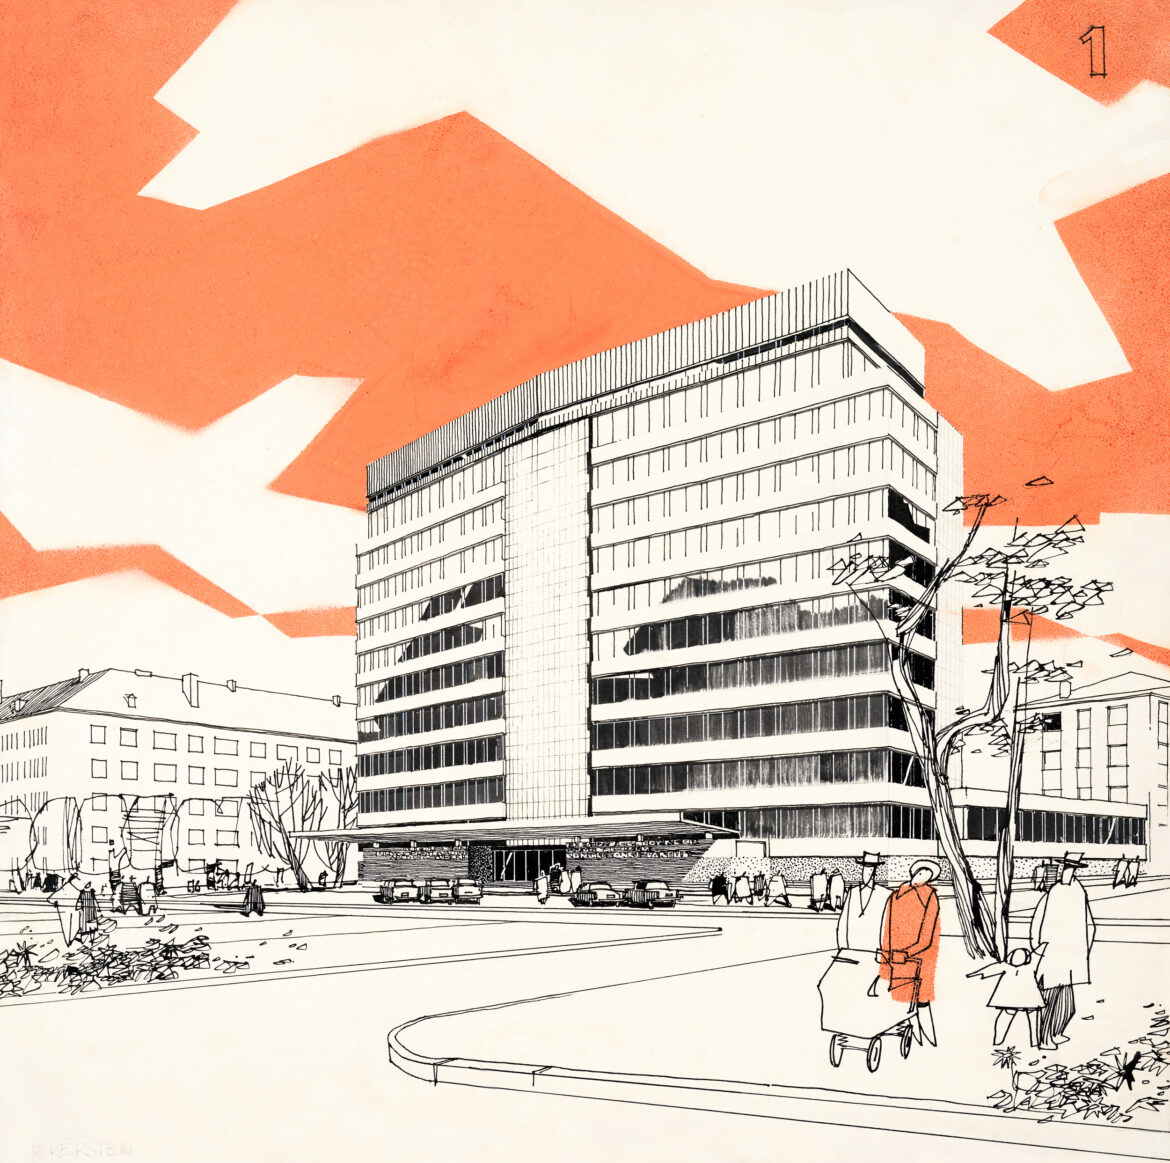 Estonian Communist Party central committee building (now the Foreign Ministry) in Tallinn. Architects Mart Port, Uno Tölpus, Raine Karp, Olga Kontšajeva. Perspective view by Rein Kersten, 1963. Ink, acrylic, felt-tip, cardboard. EAM 4.3.2